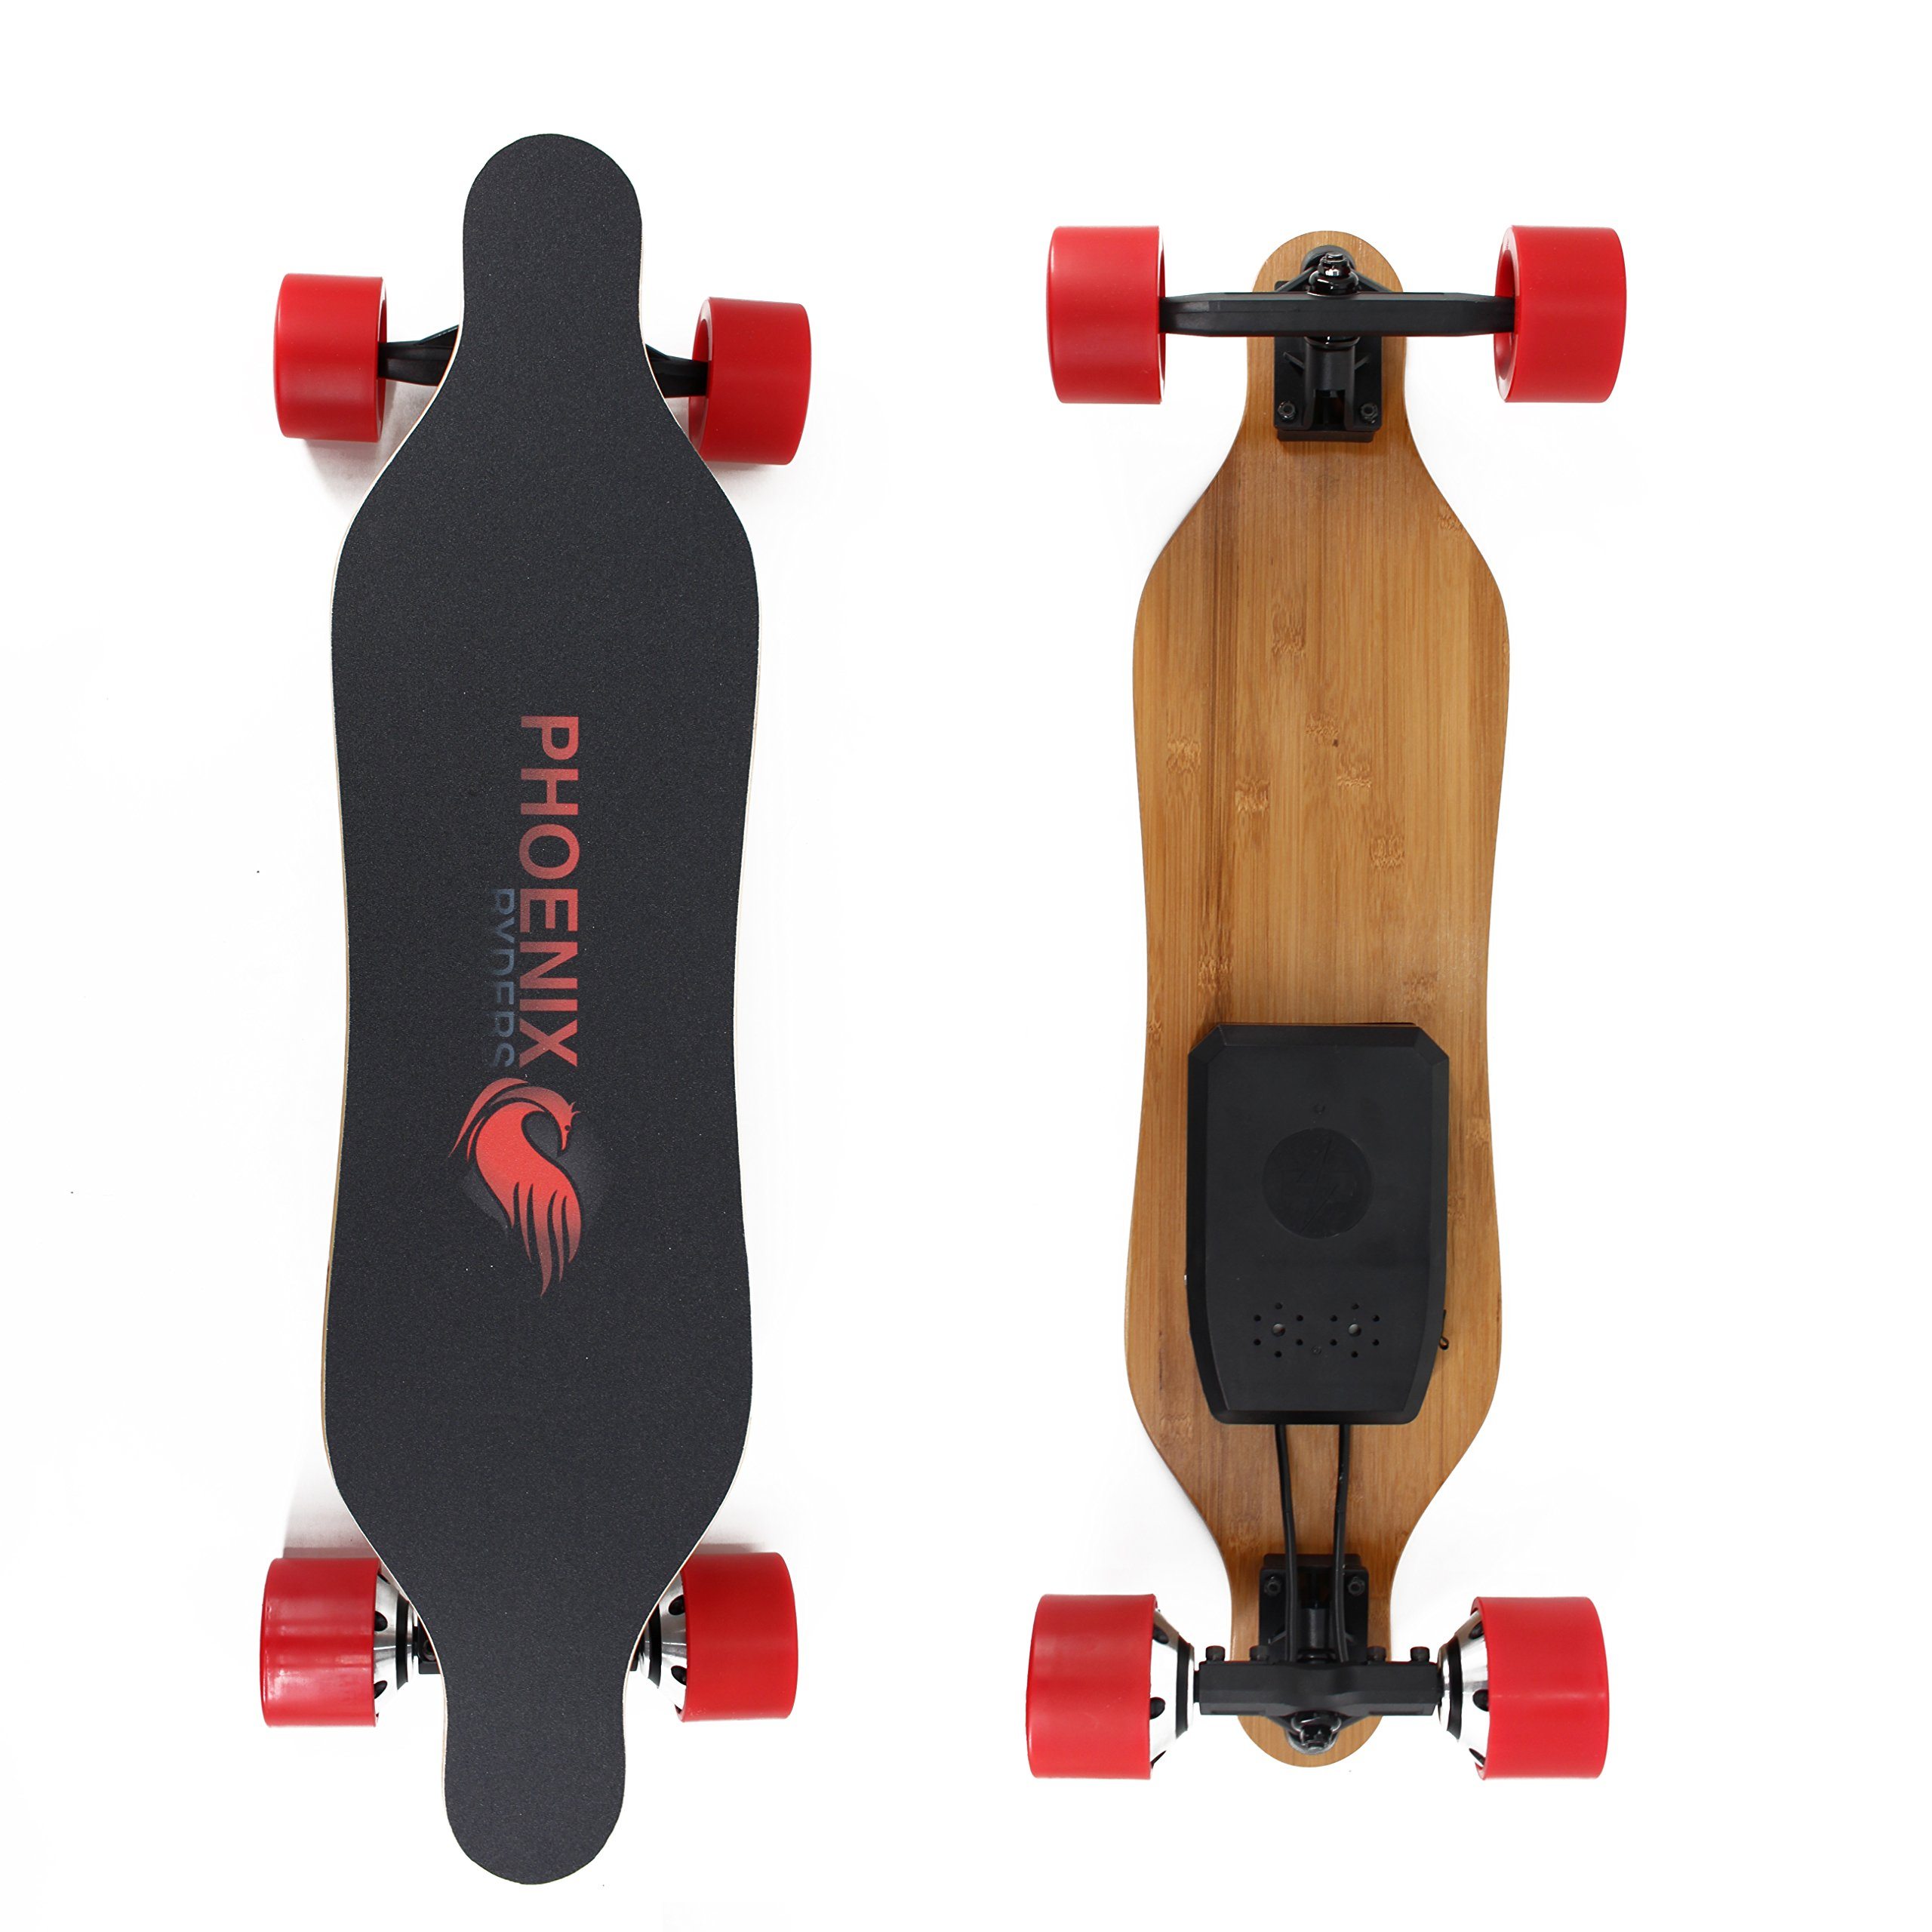 PHOENIX RYDERS Electric Skateboard 4.4AH Lithium Battery,Dual Motor Each 350W, 32 Inches Maple with Remote Control by Alouette